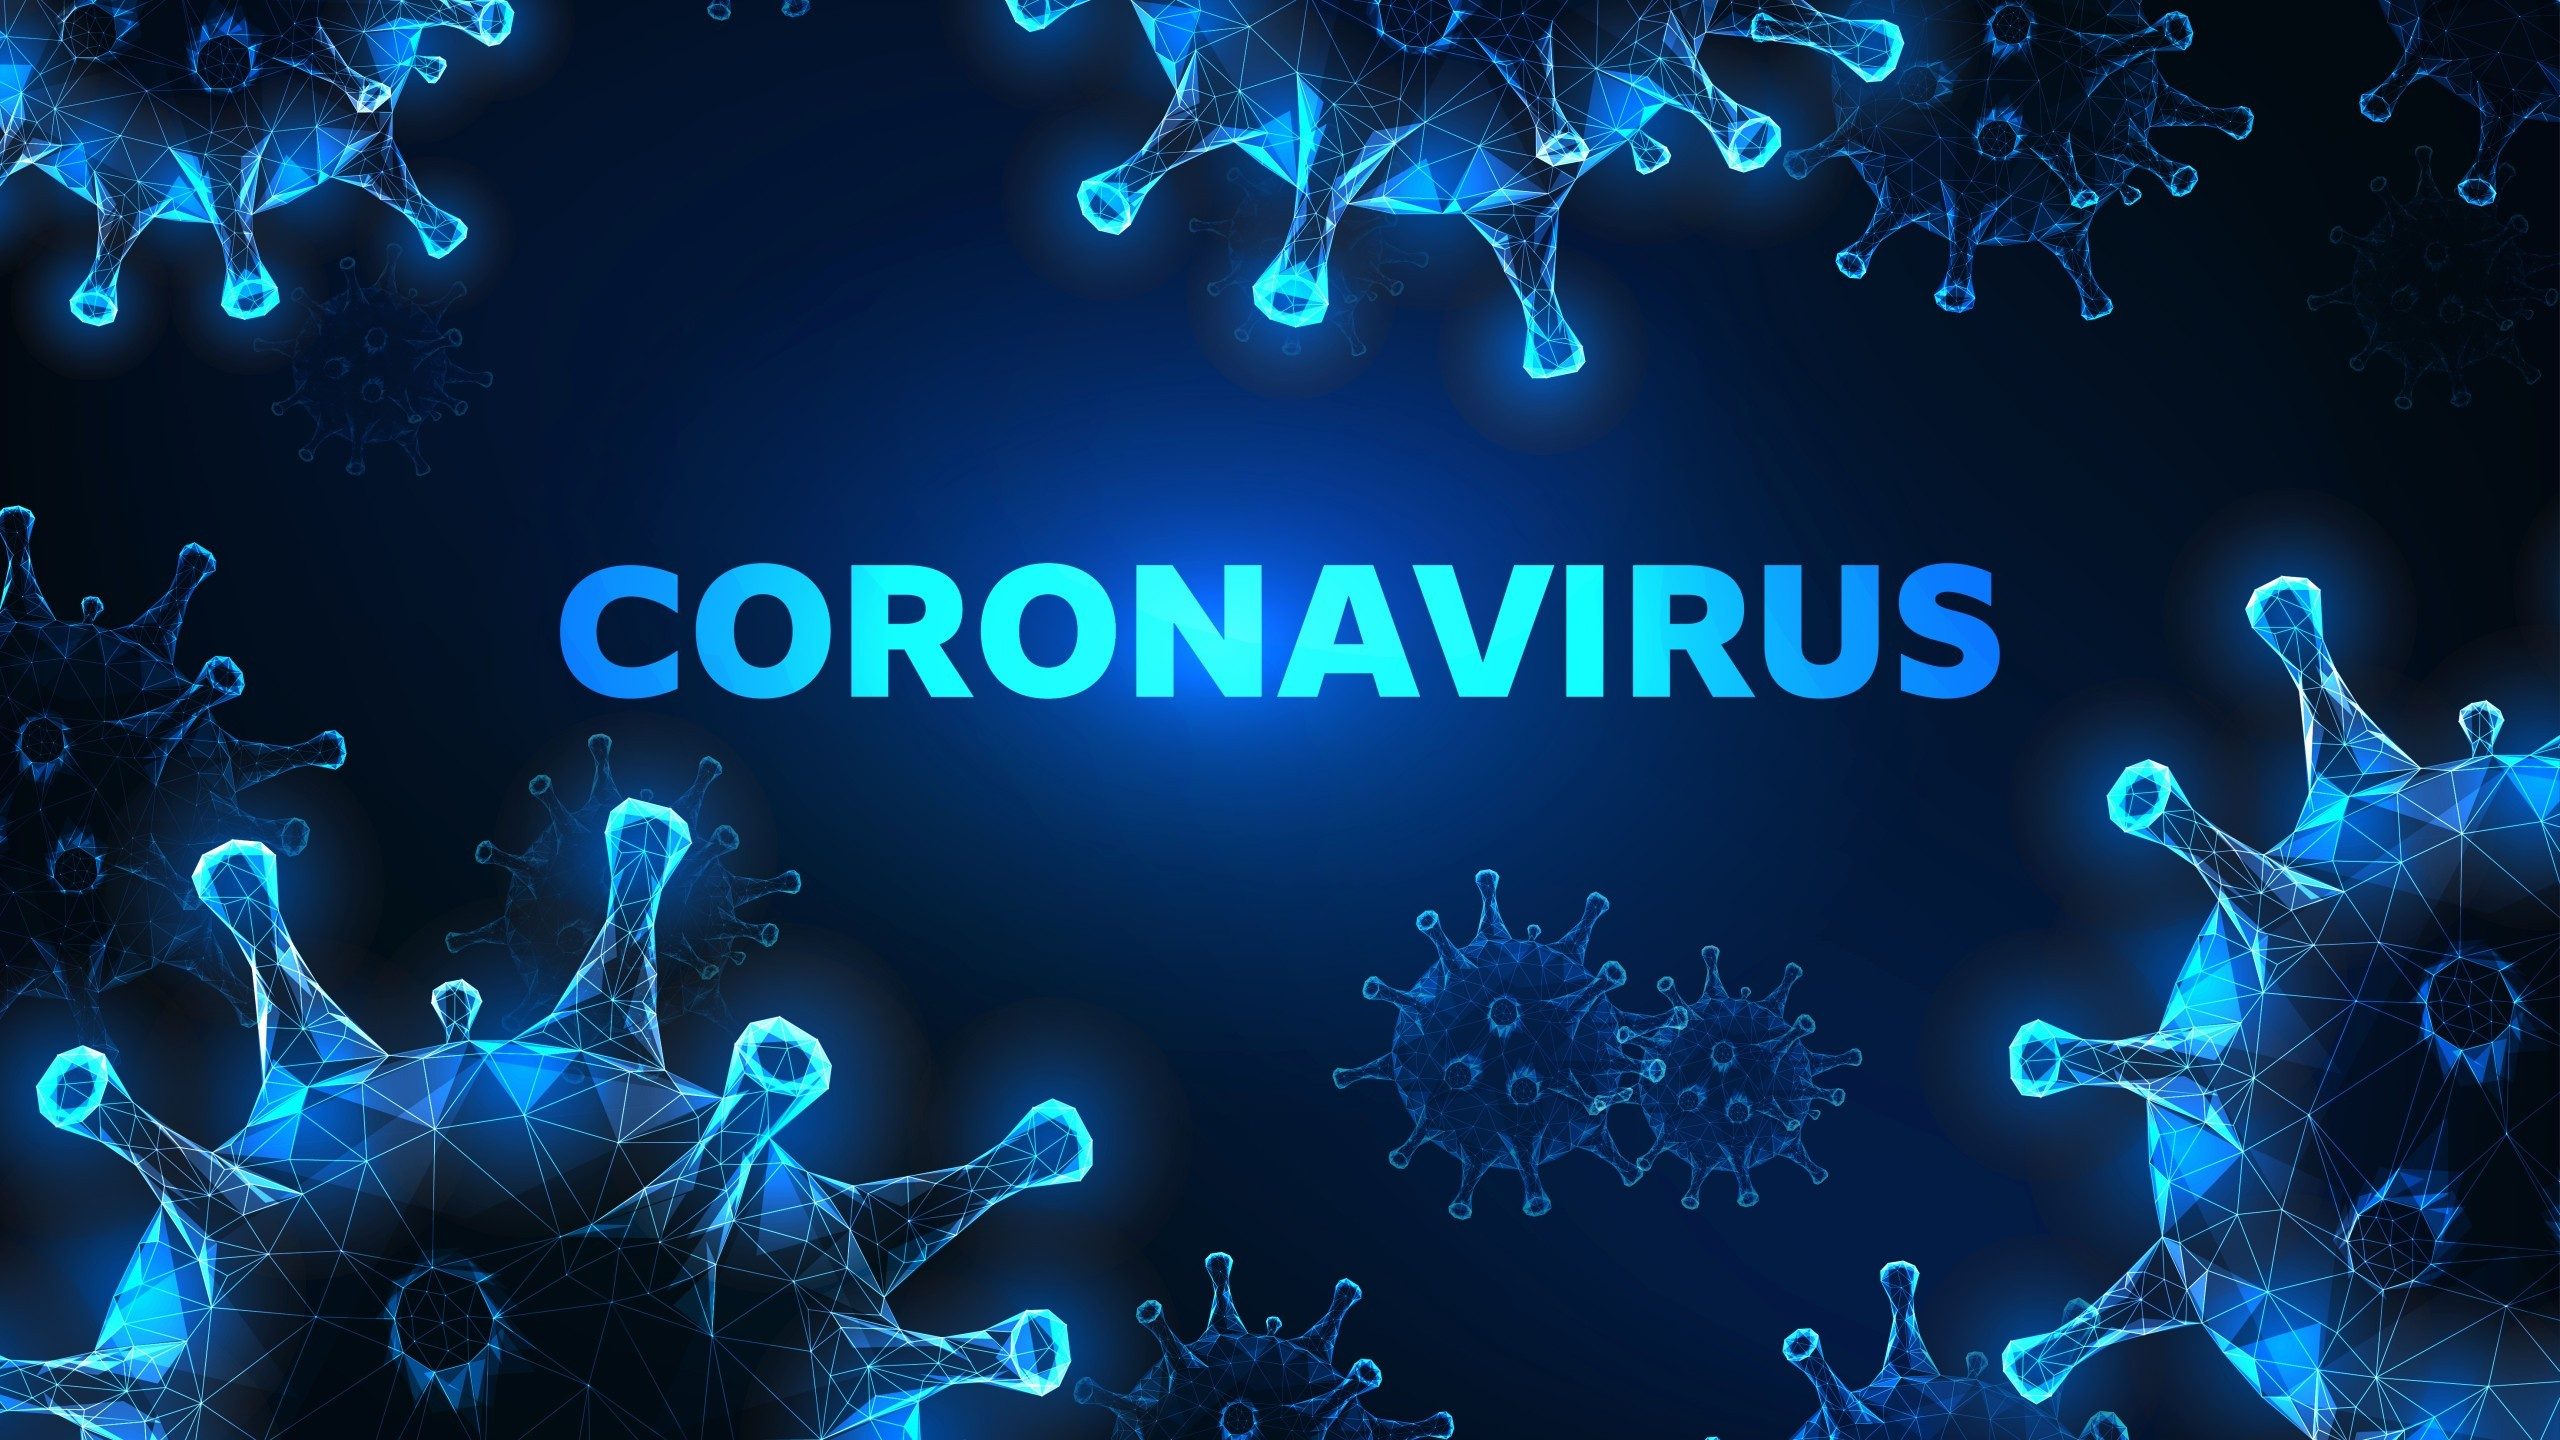 Coronavirus Wallpaper   KoLPaPer   Awesome HD Wallpapers 2560x1440